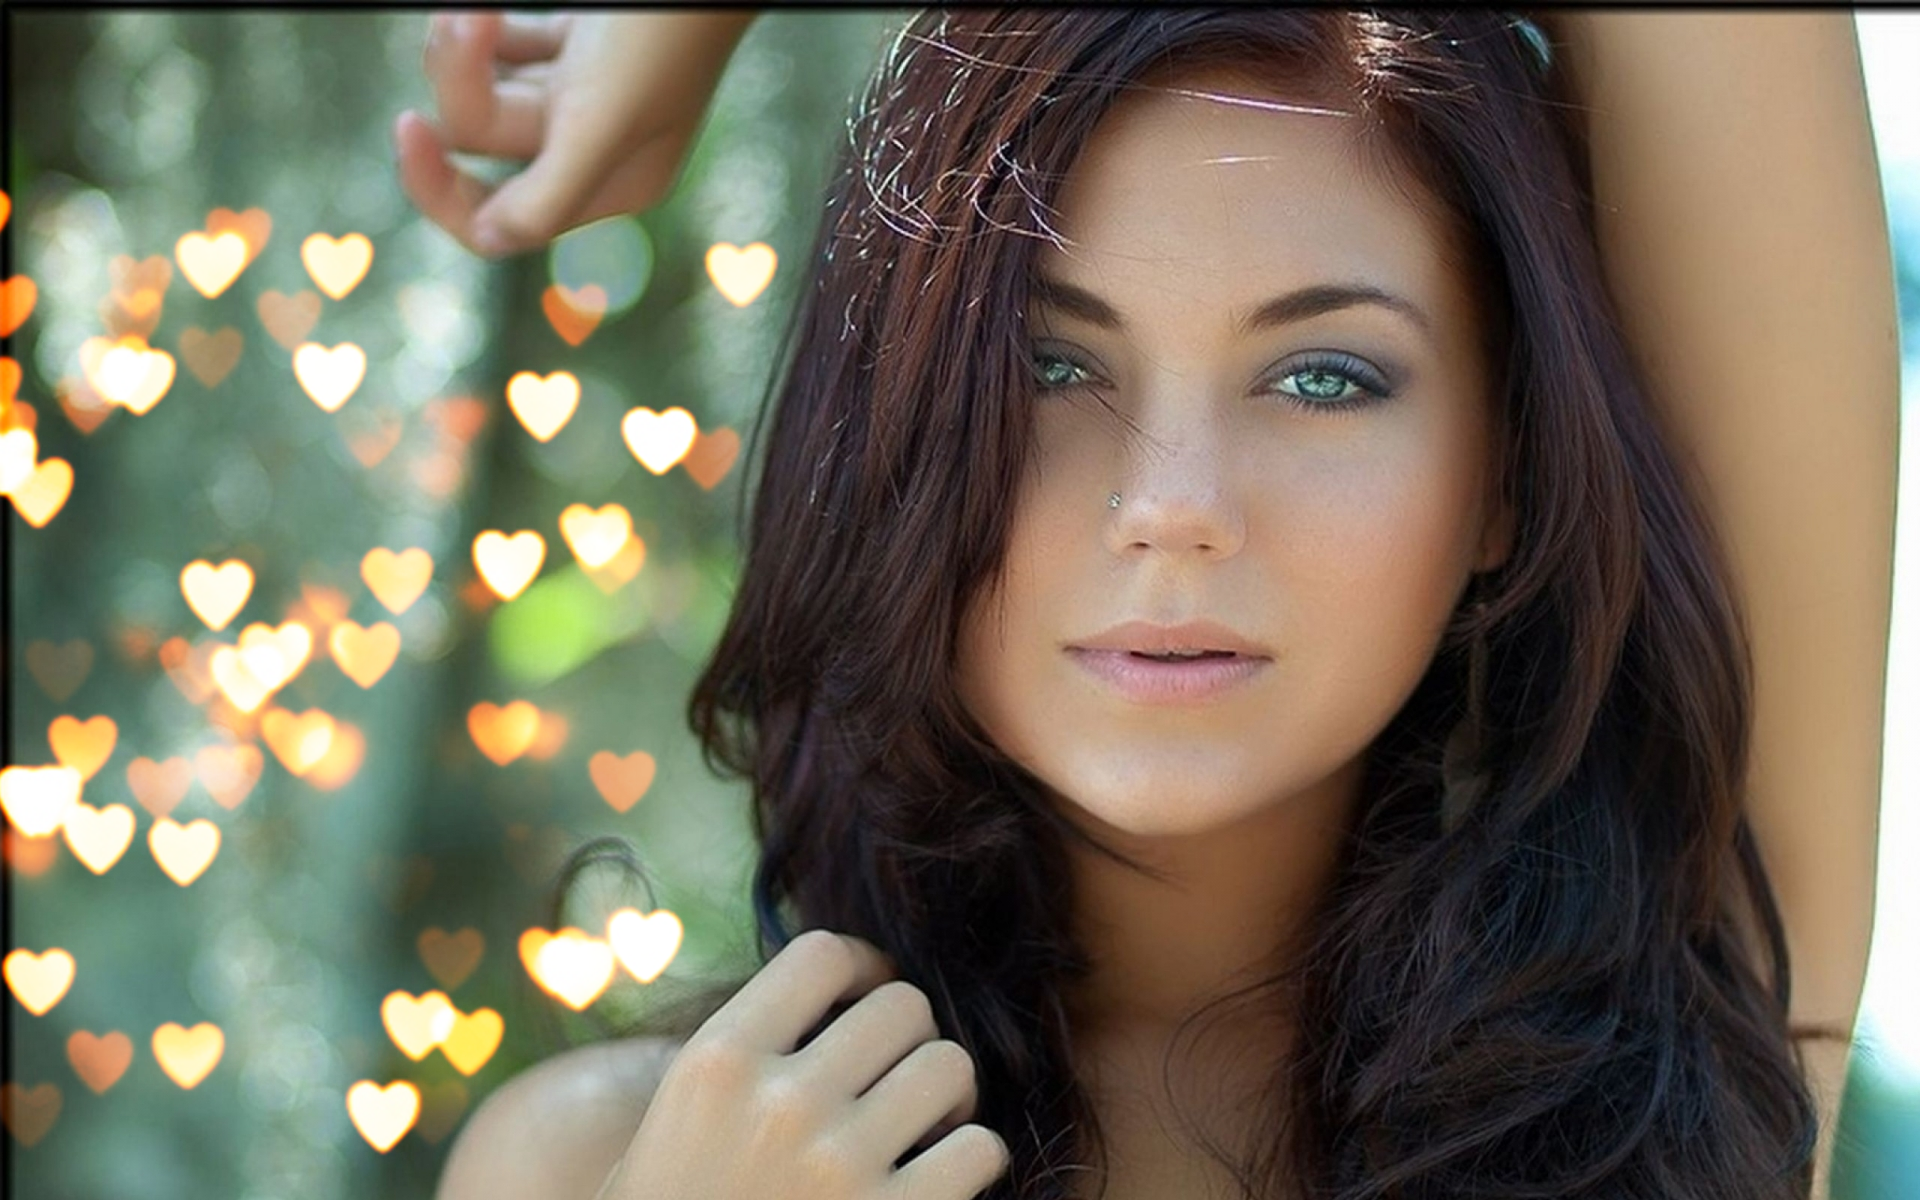 Bokeh effects overlays portrait